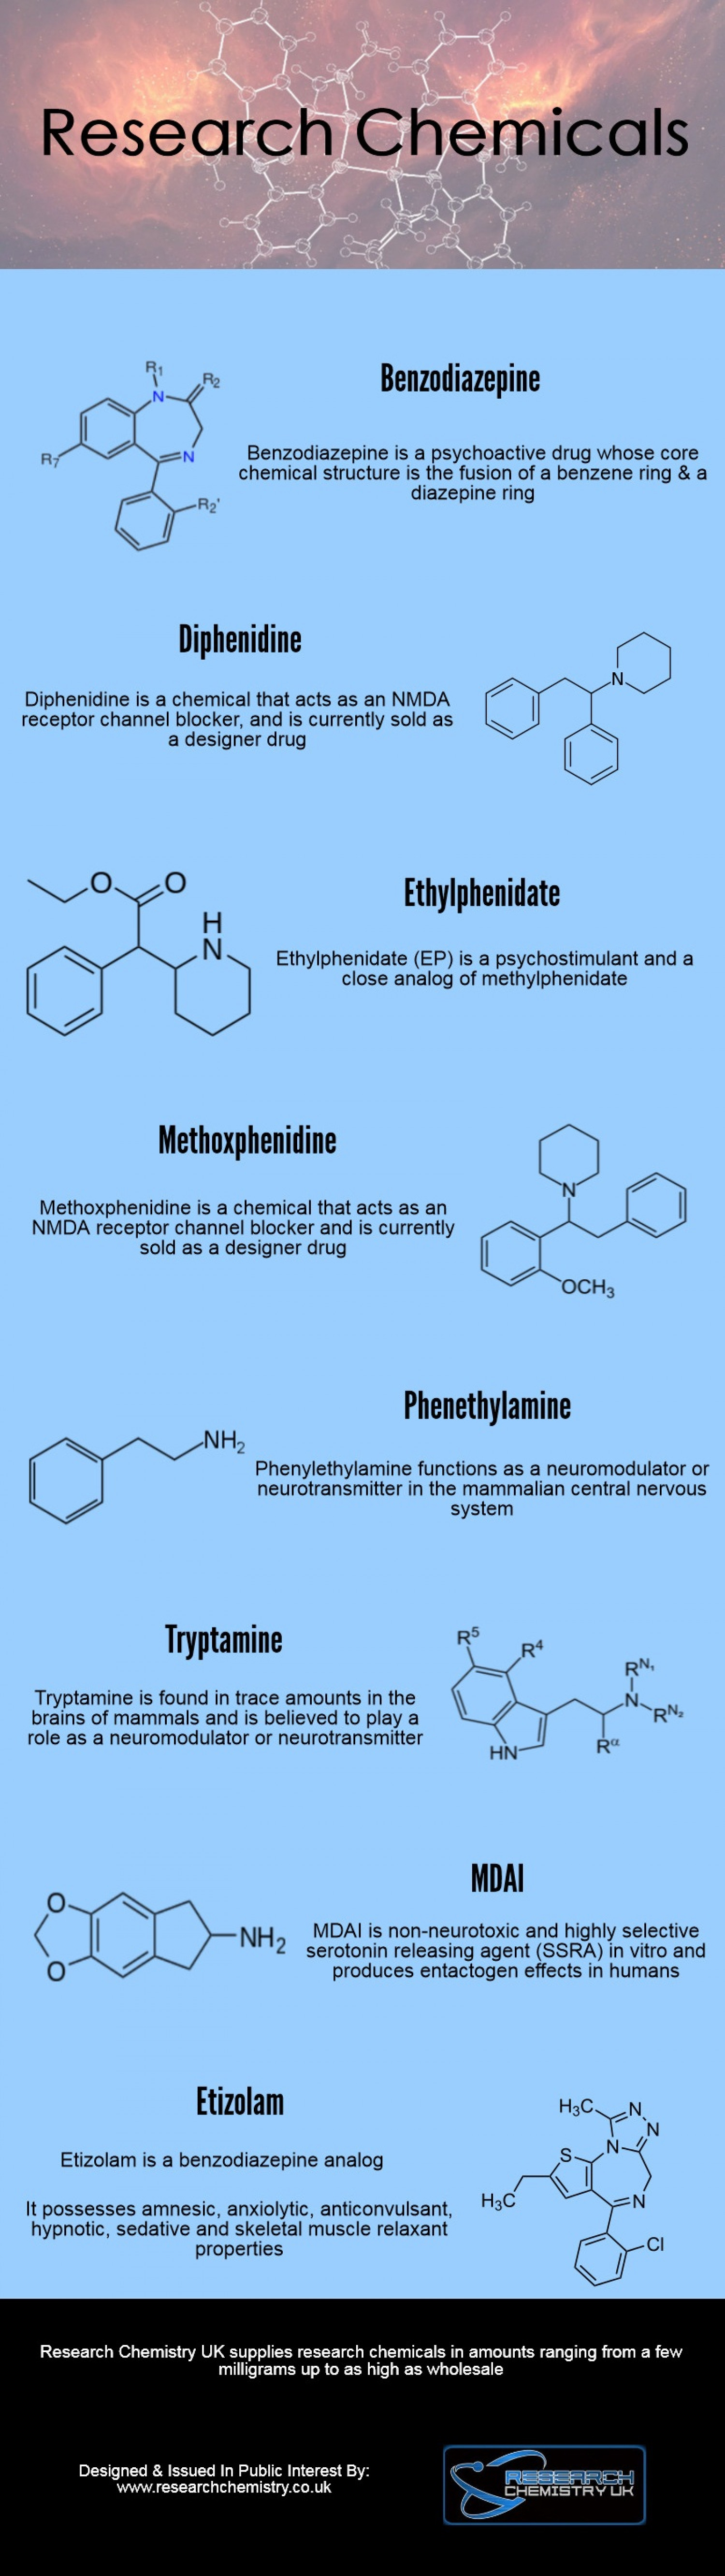 Research Chemicals Infographic